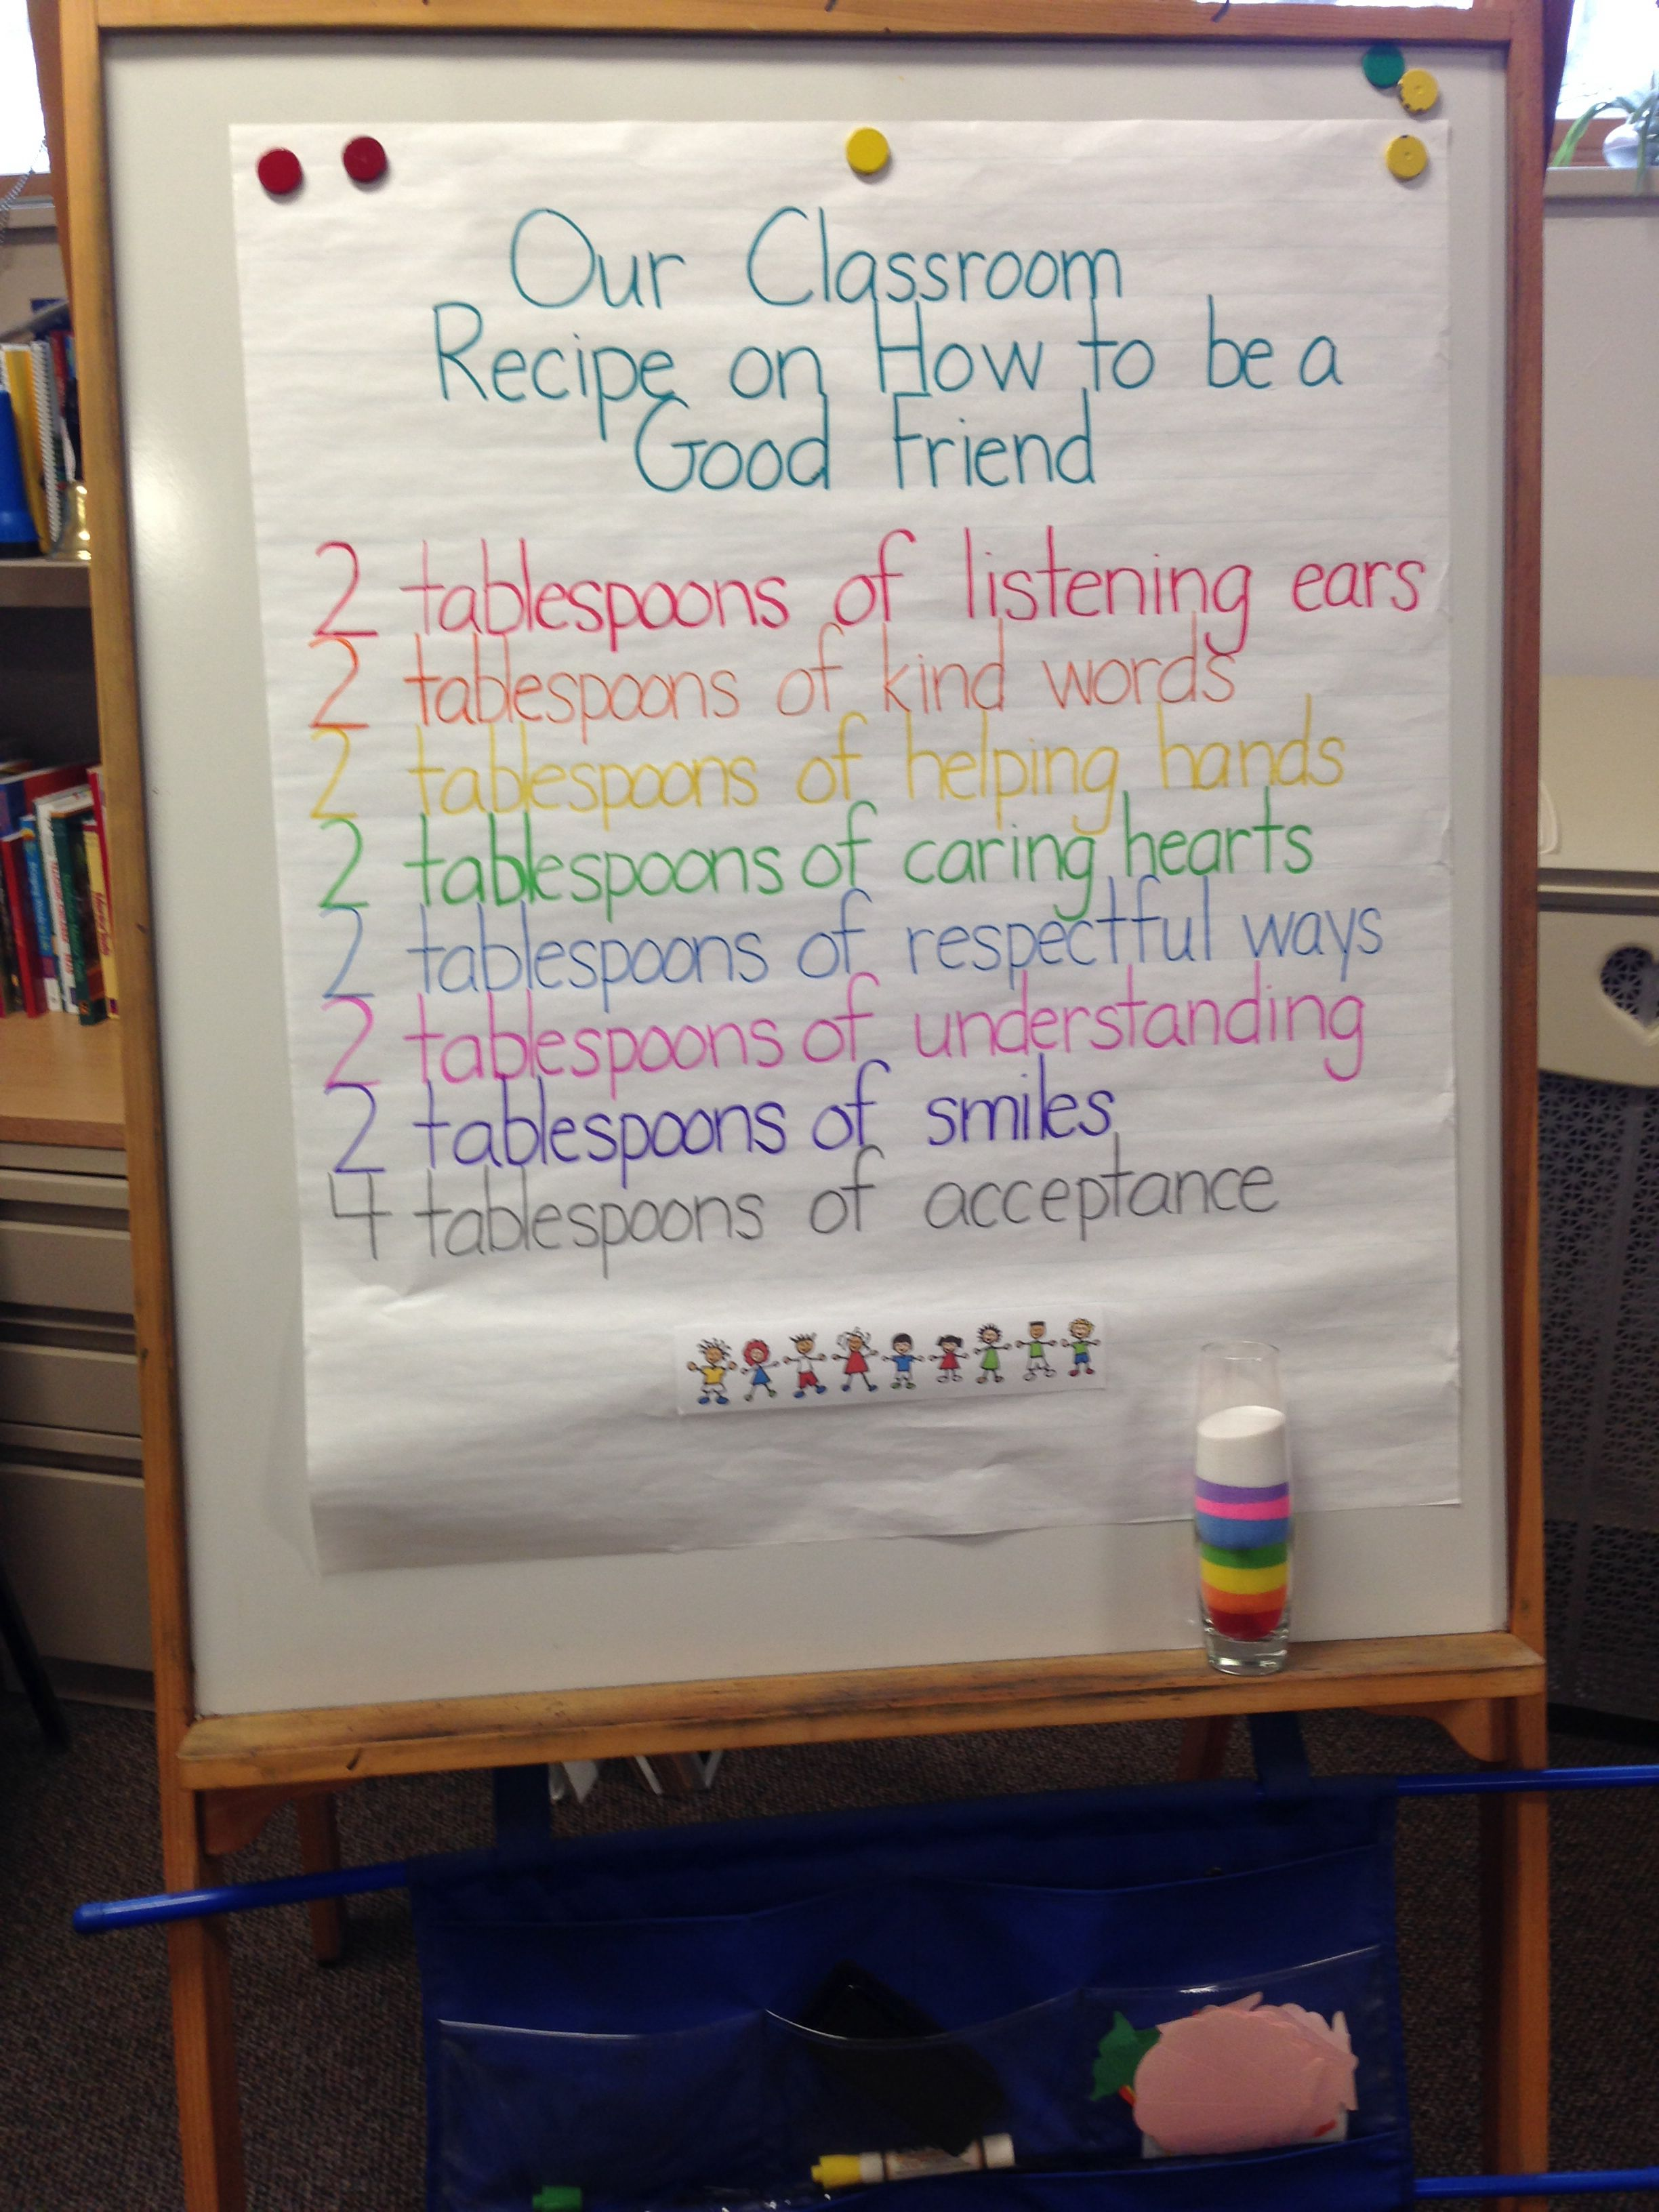 Classroom Recipe For Being A Good Friend